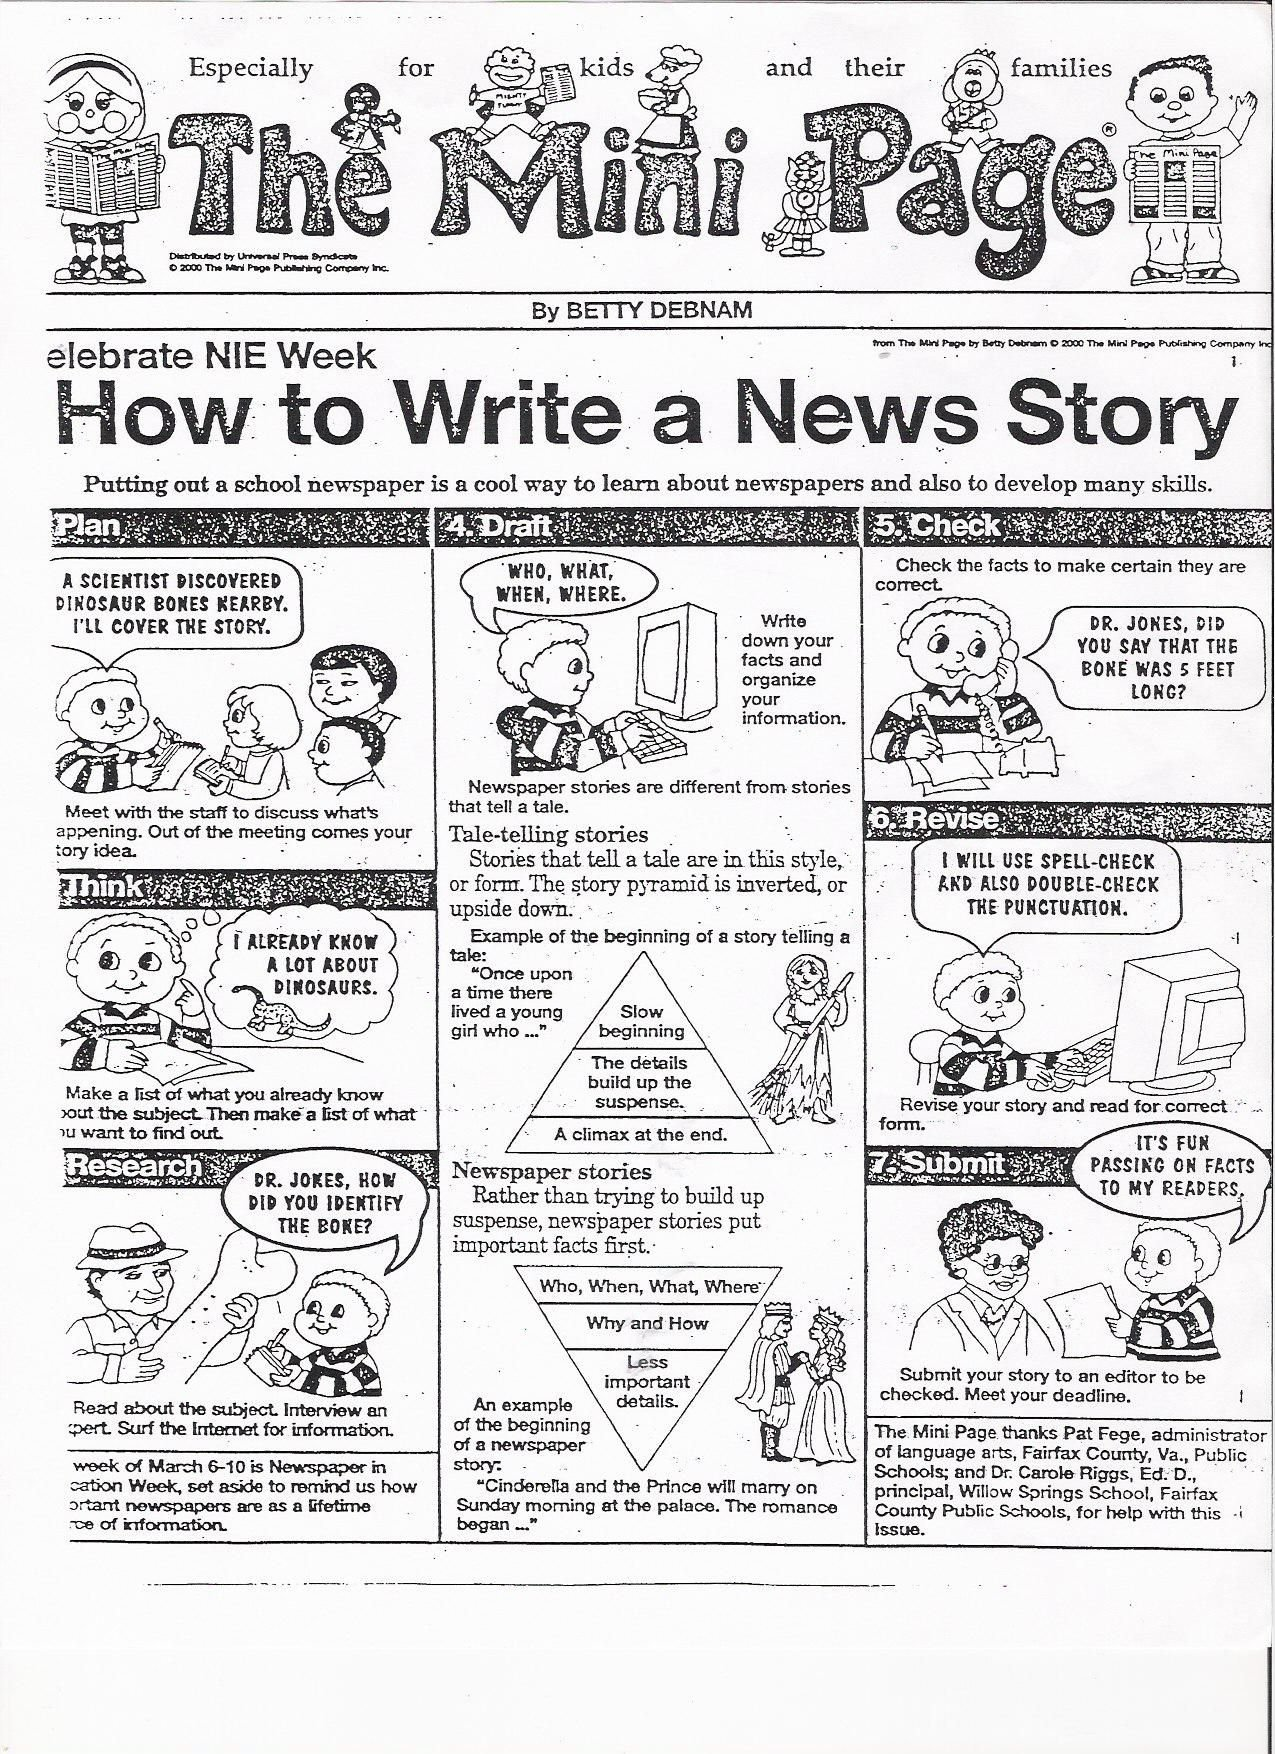 10 Attractive Middle School Newspaper Article Ideas how to make money writing articles newspaper cartoon and programming 2020